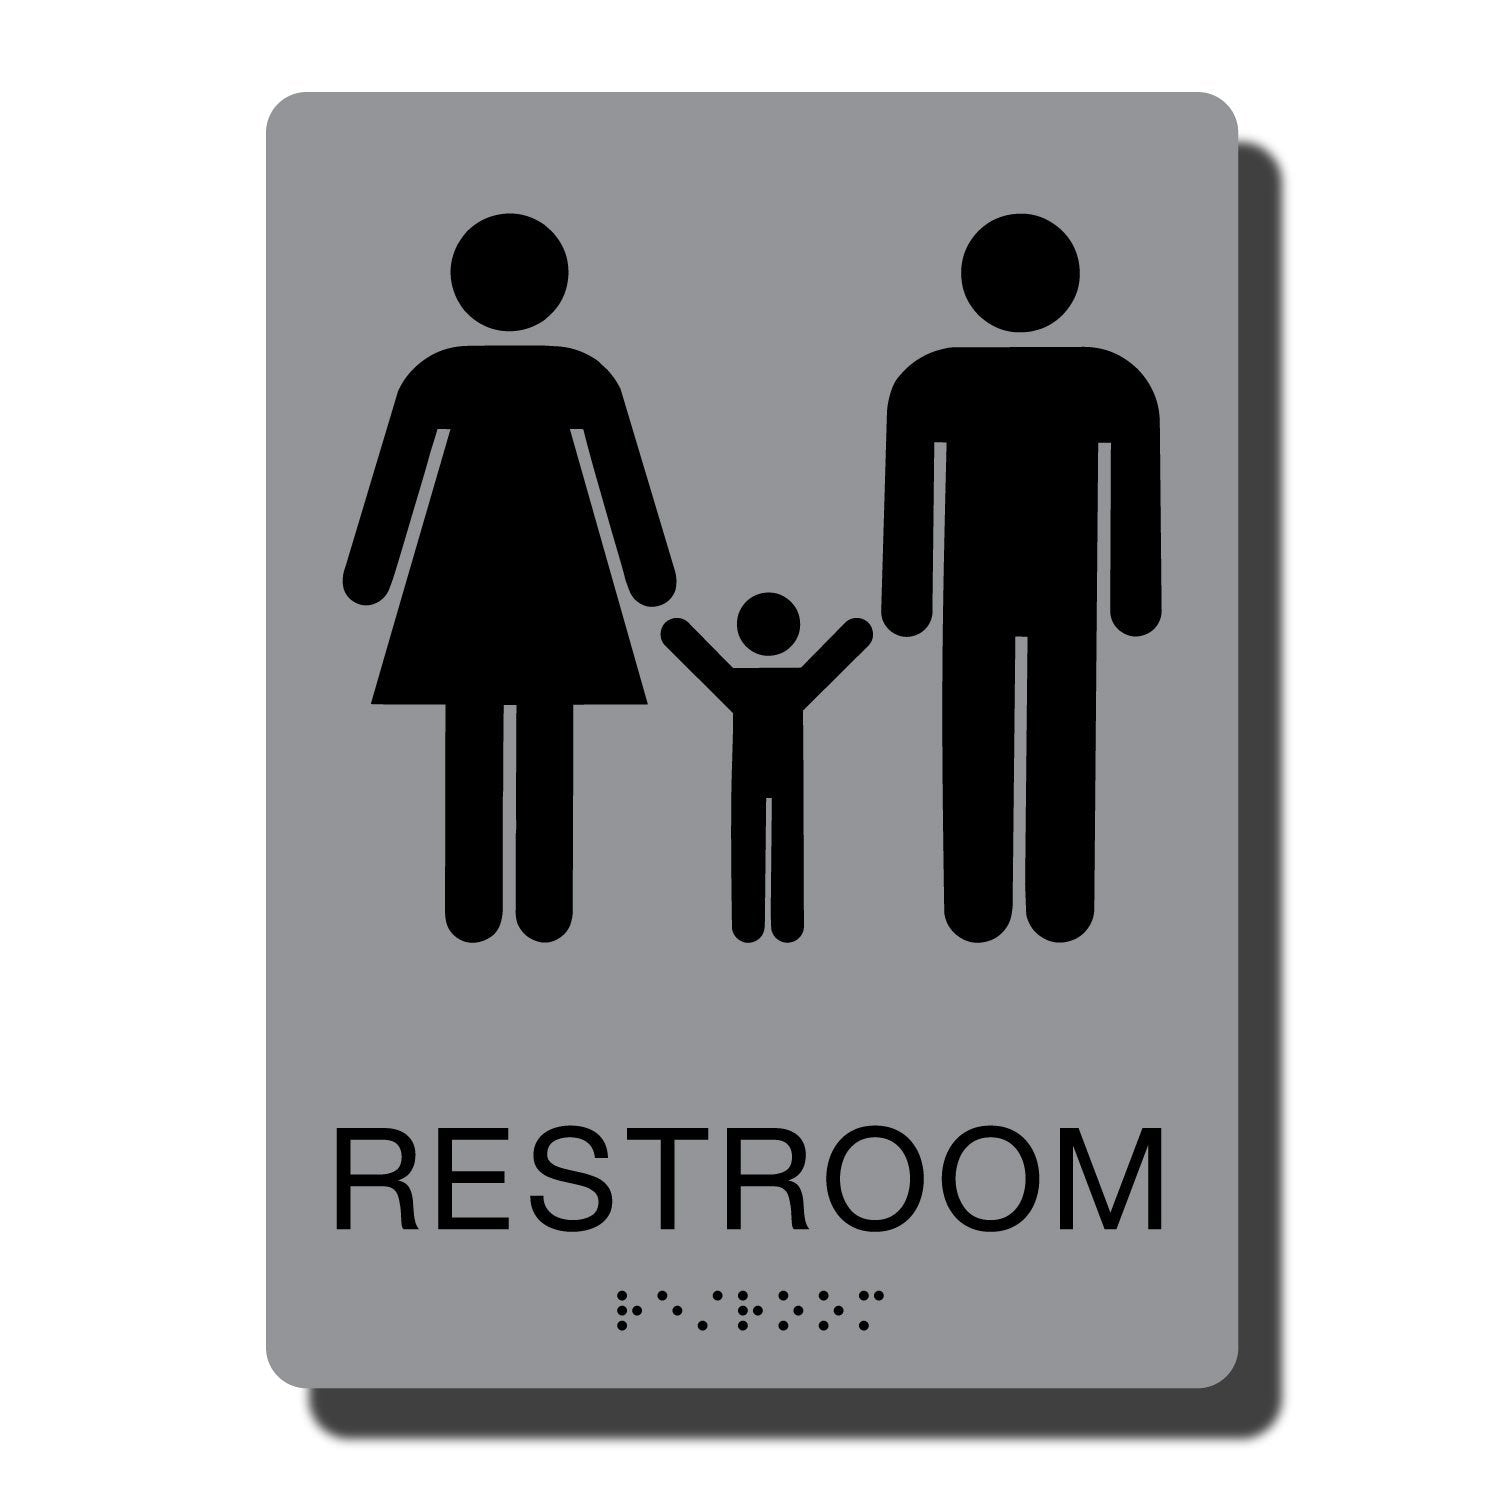 Standard ADA Sign - NapADASigns - ADA Family Restroom Sign with Braille - Silver with Black - 6